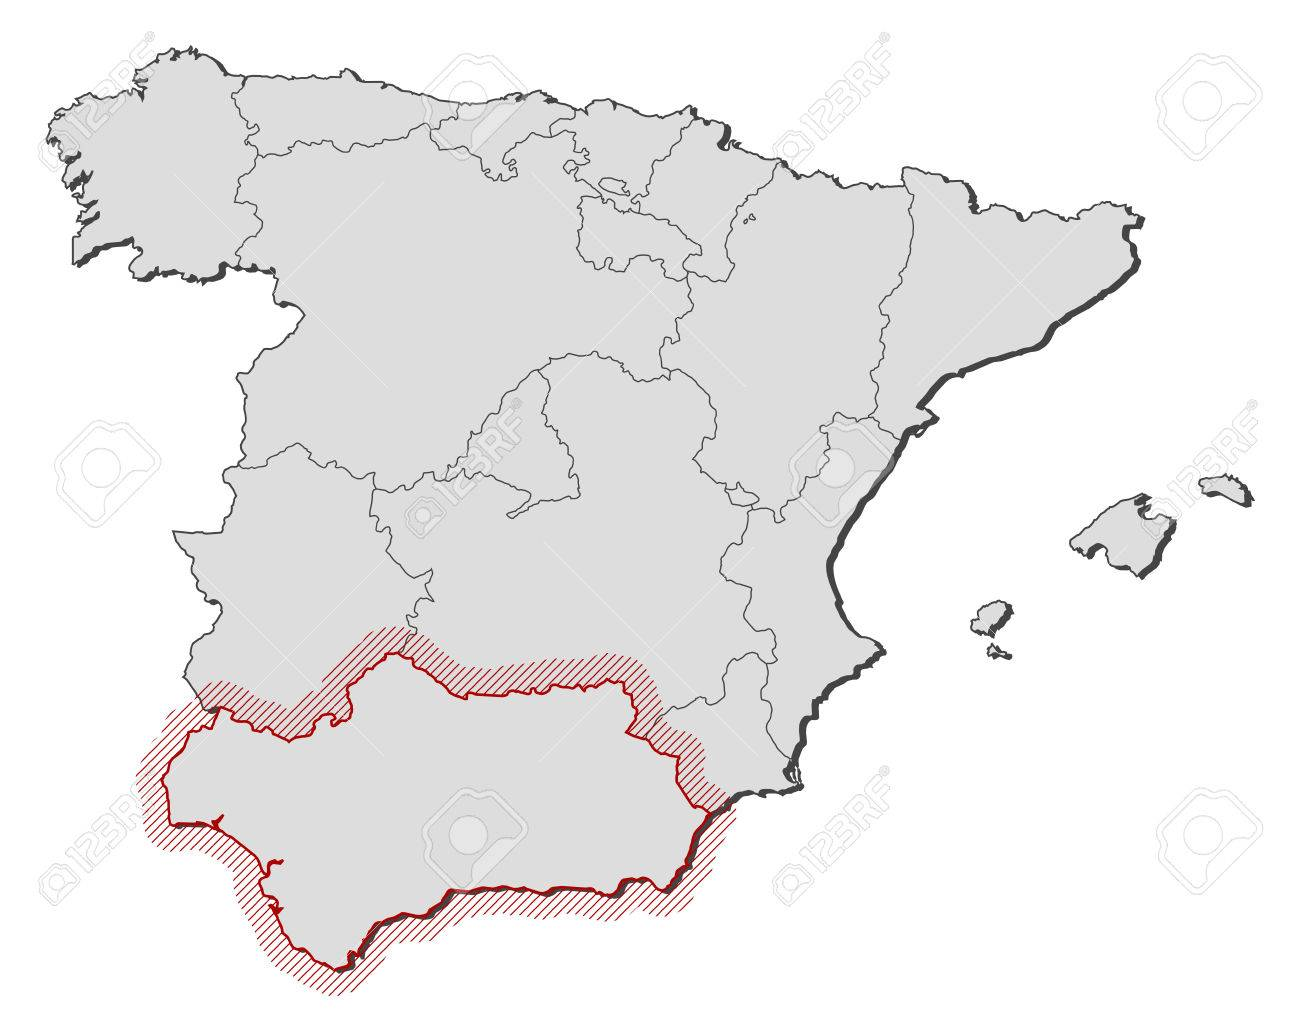 Map Of Spain With The Provinces Andalusia Is Highlighted By